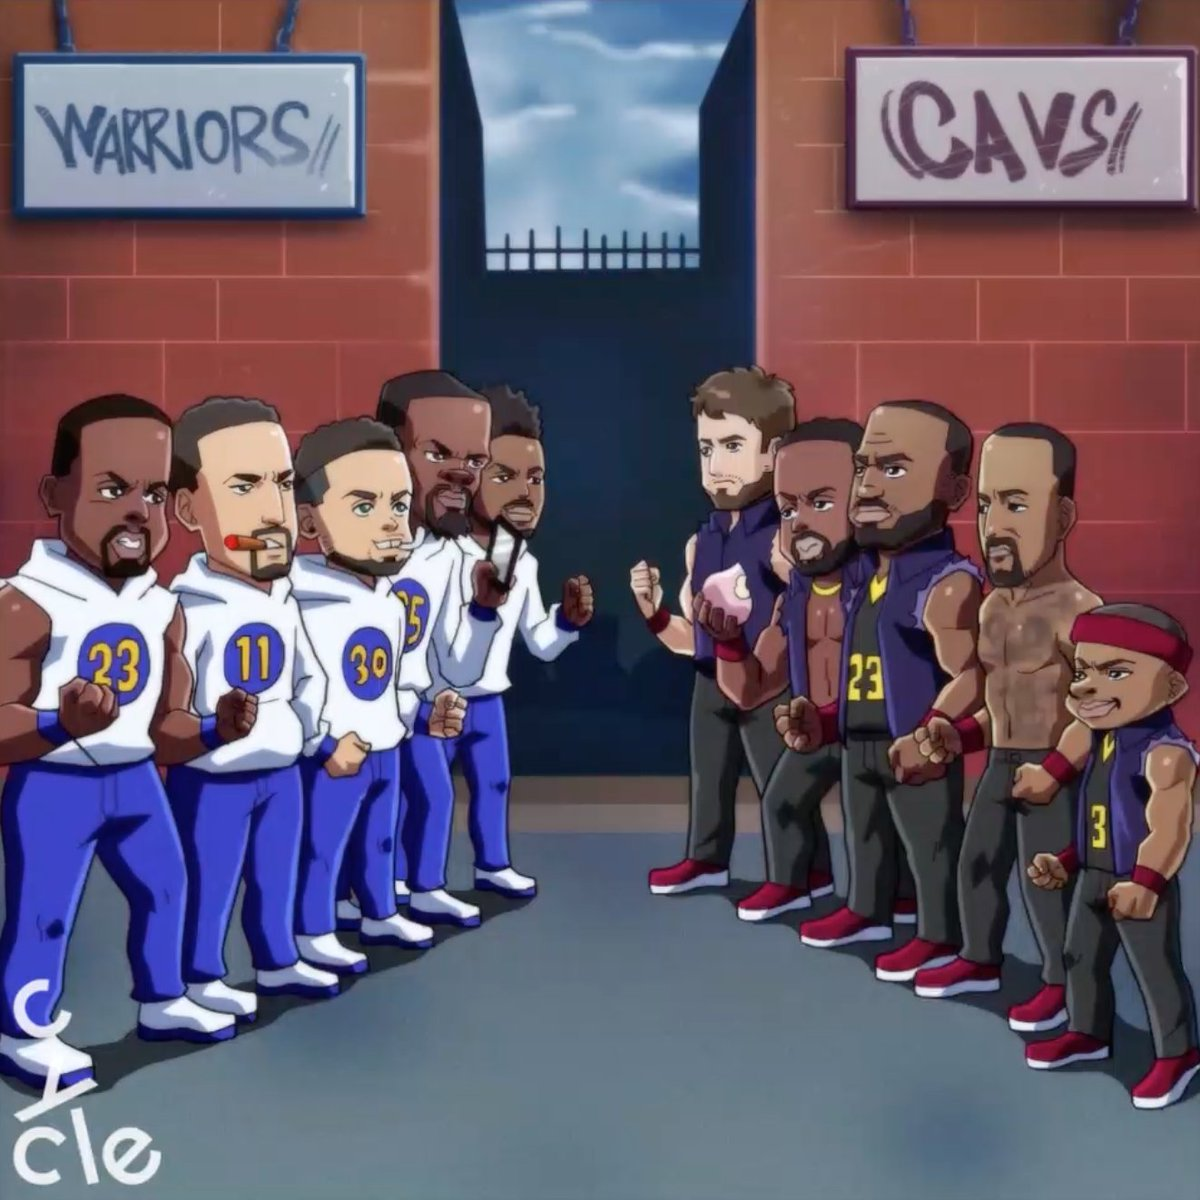 Cycle's photo on Cavs